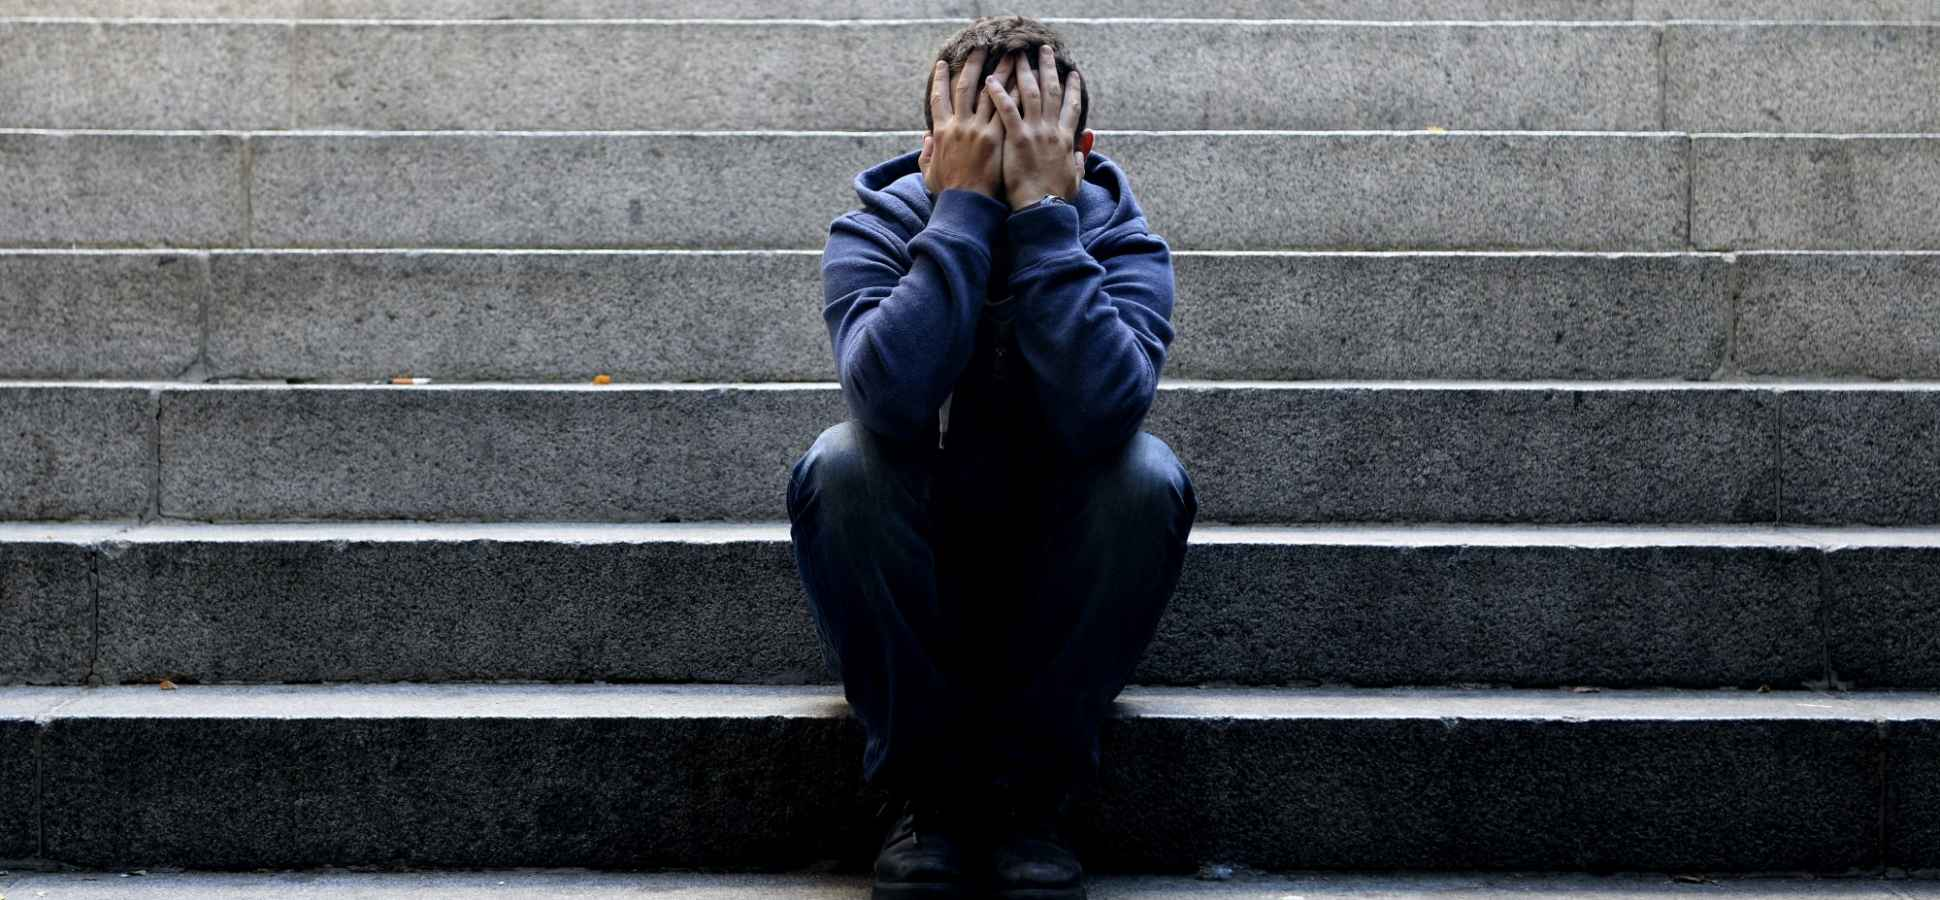 7 Tips to Cope With Extreme Anxiety